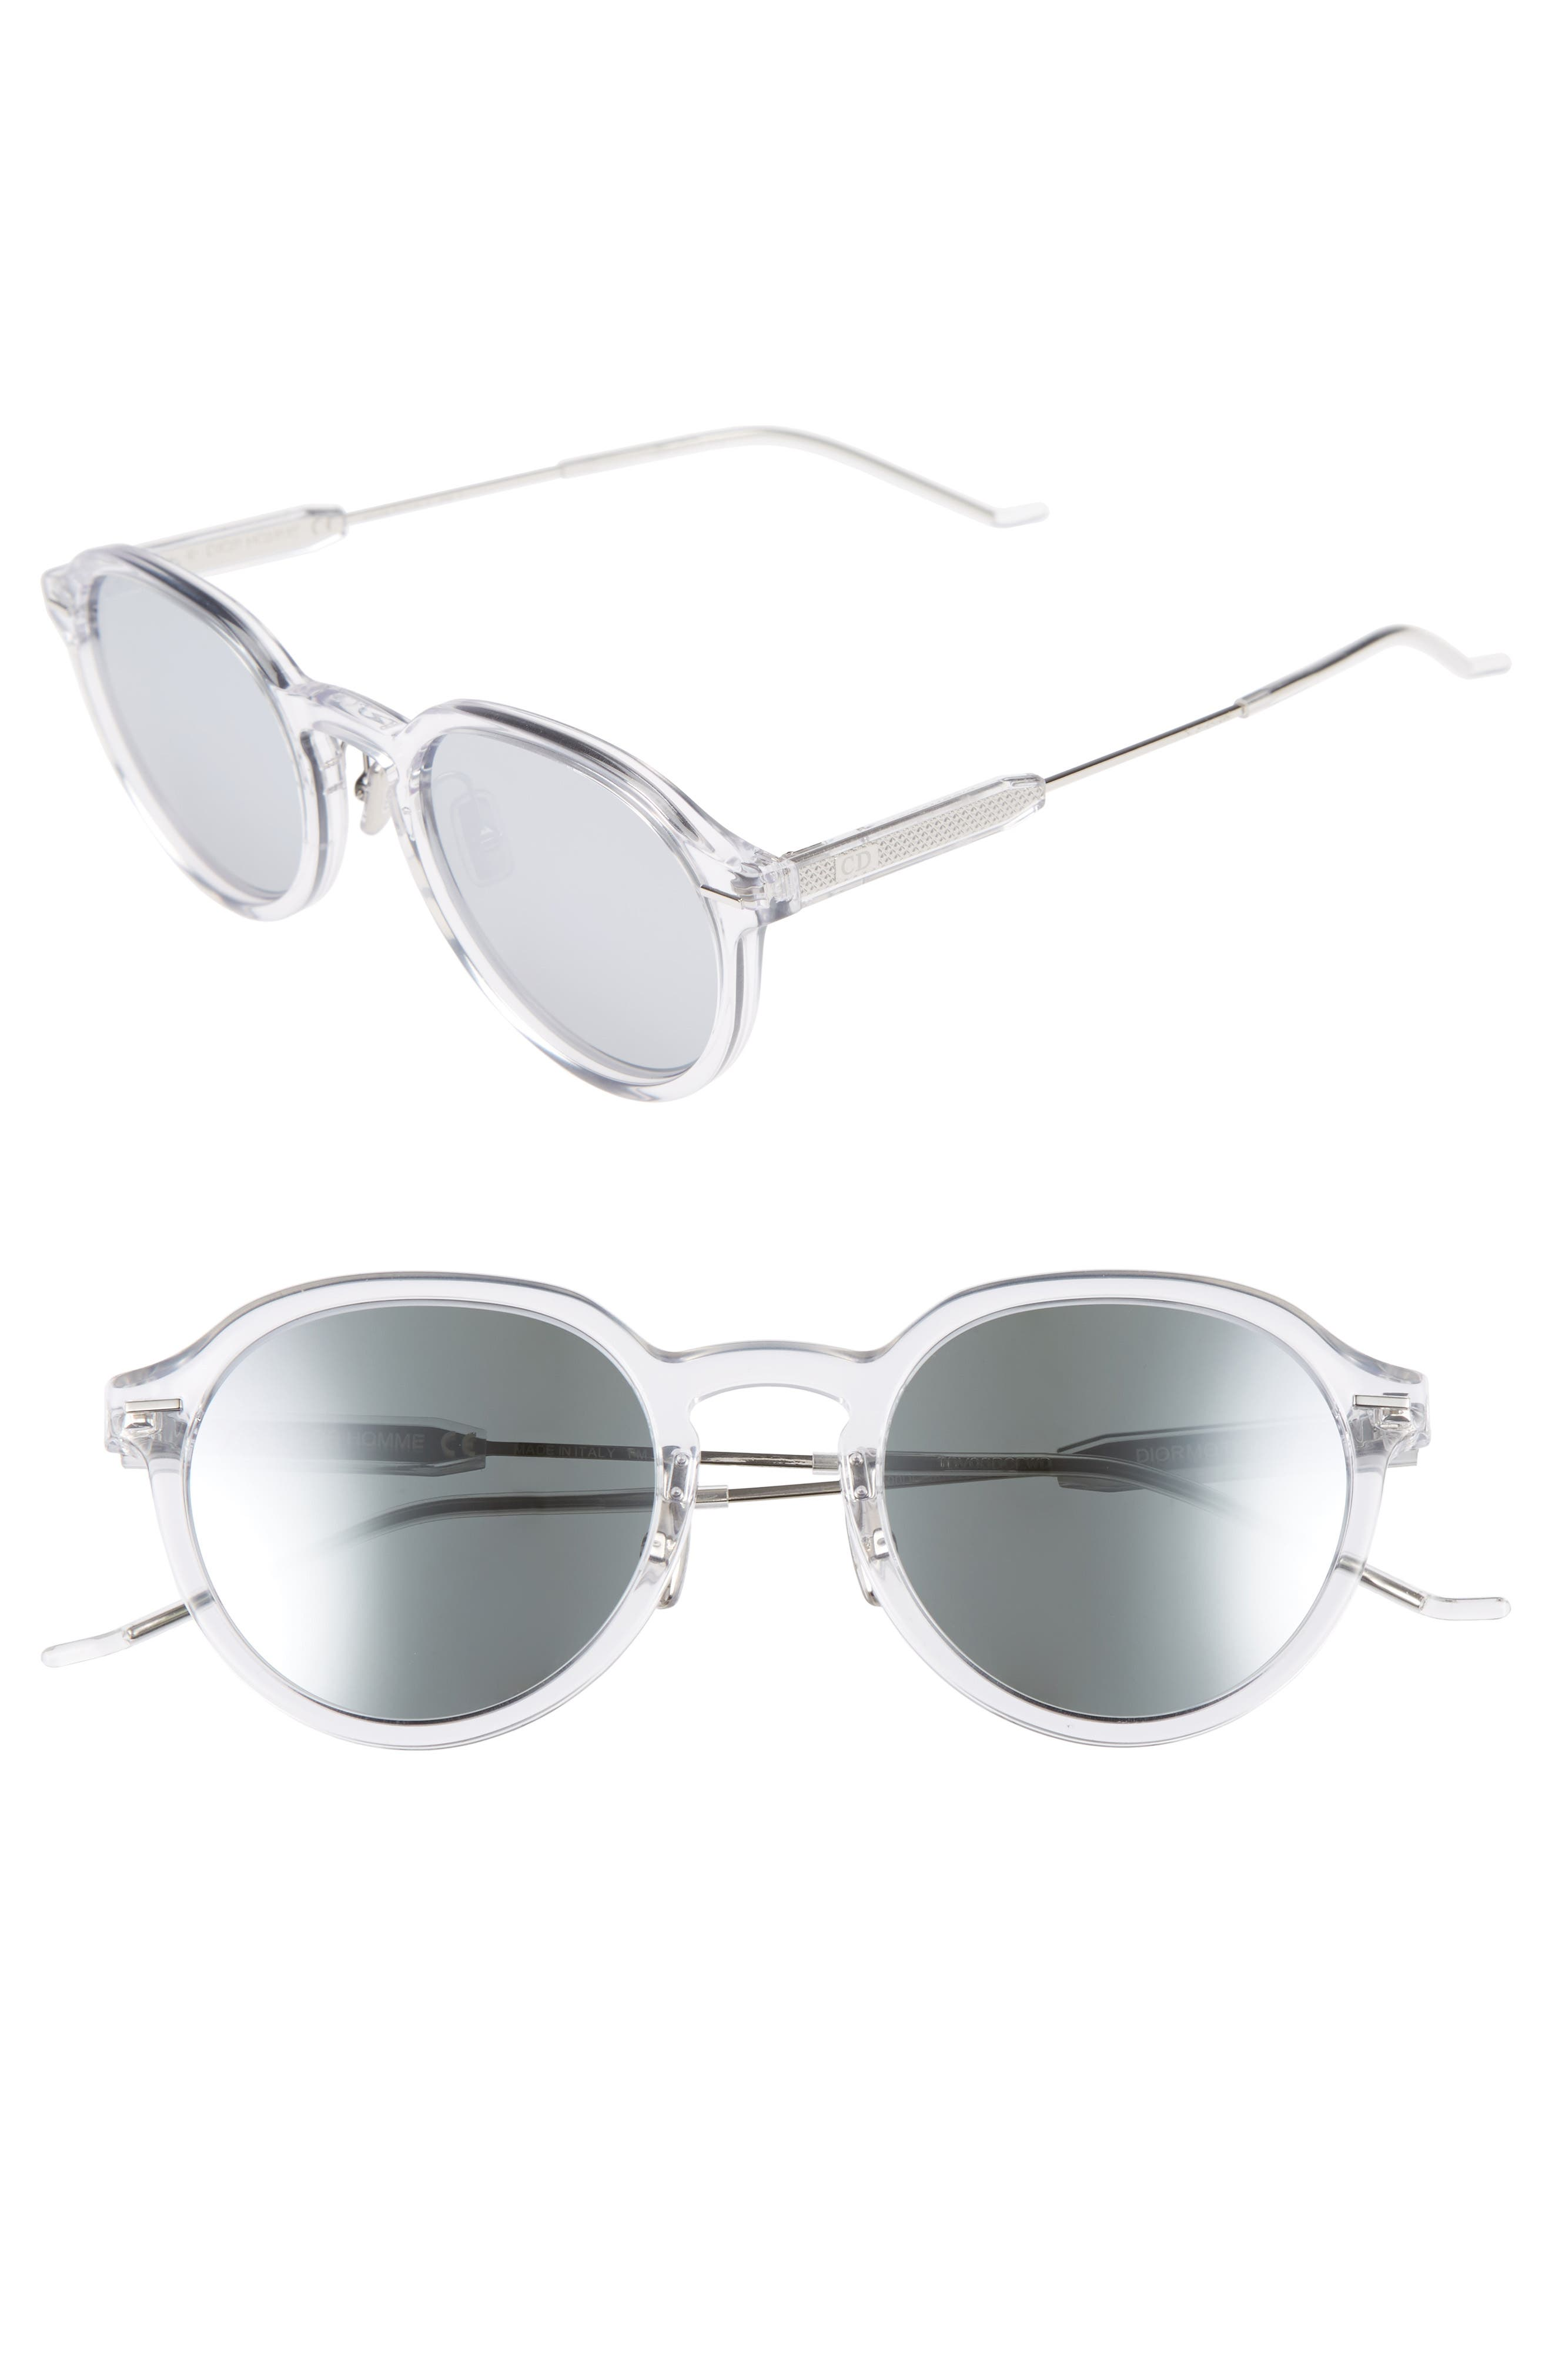 Motion 2 50mm Sunglasses,                         Main,                         color, CRYSTAL/ SILVER MIRROR